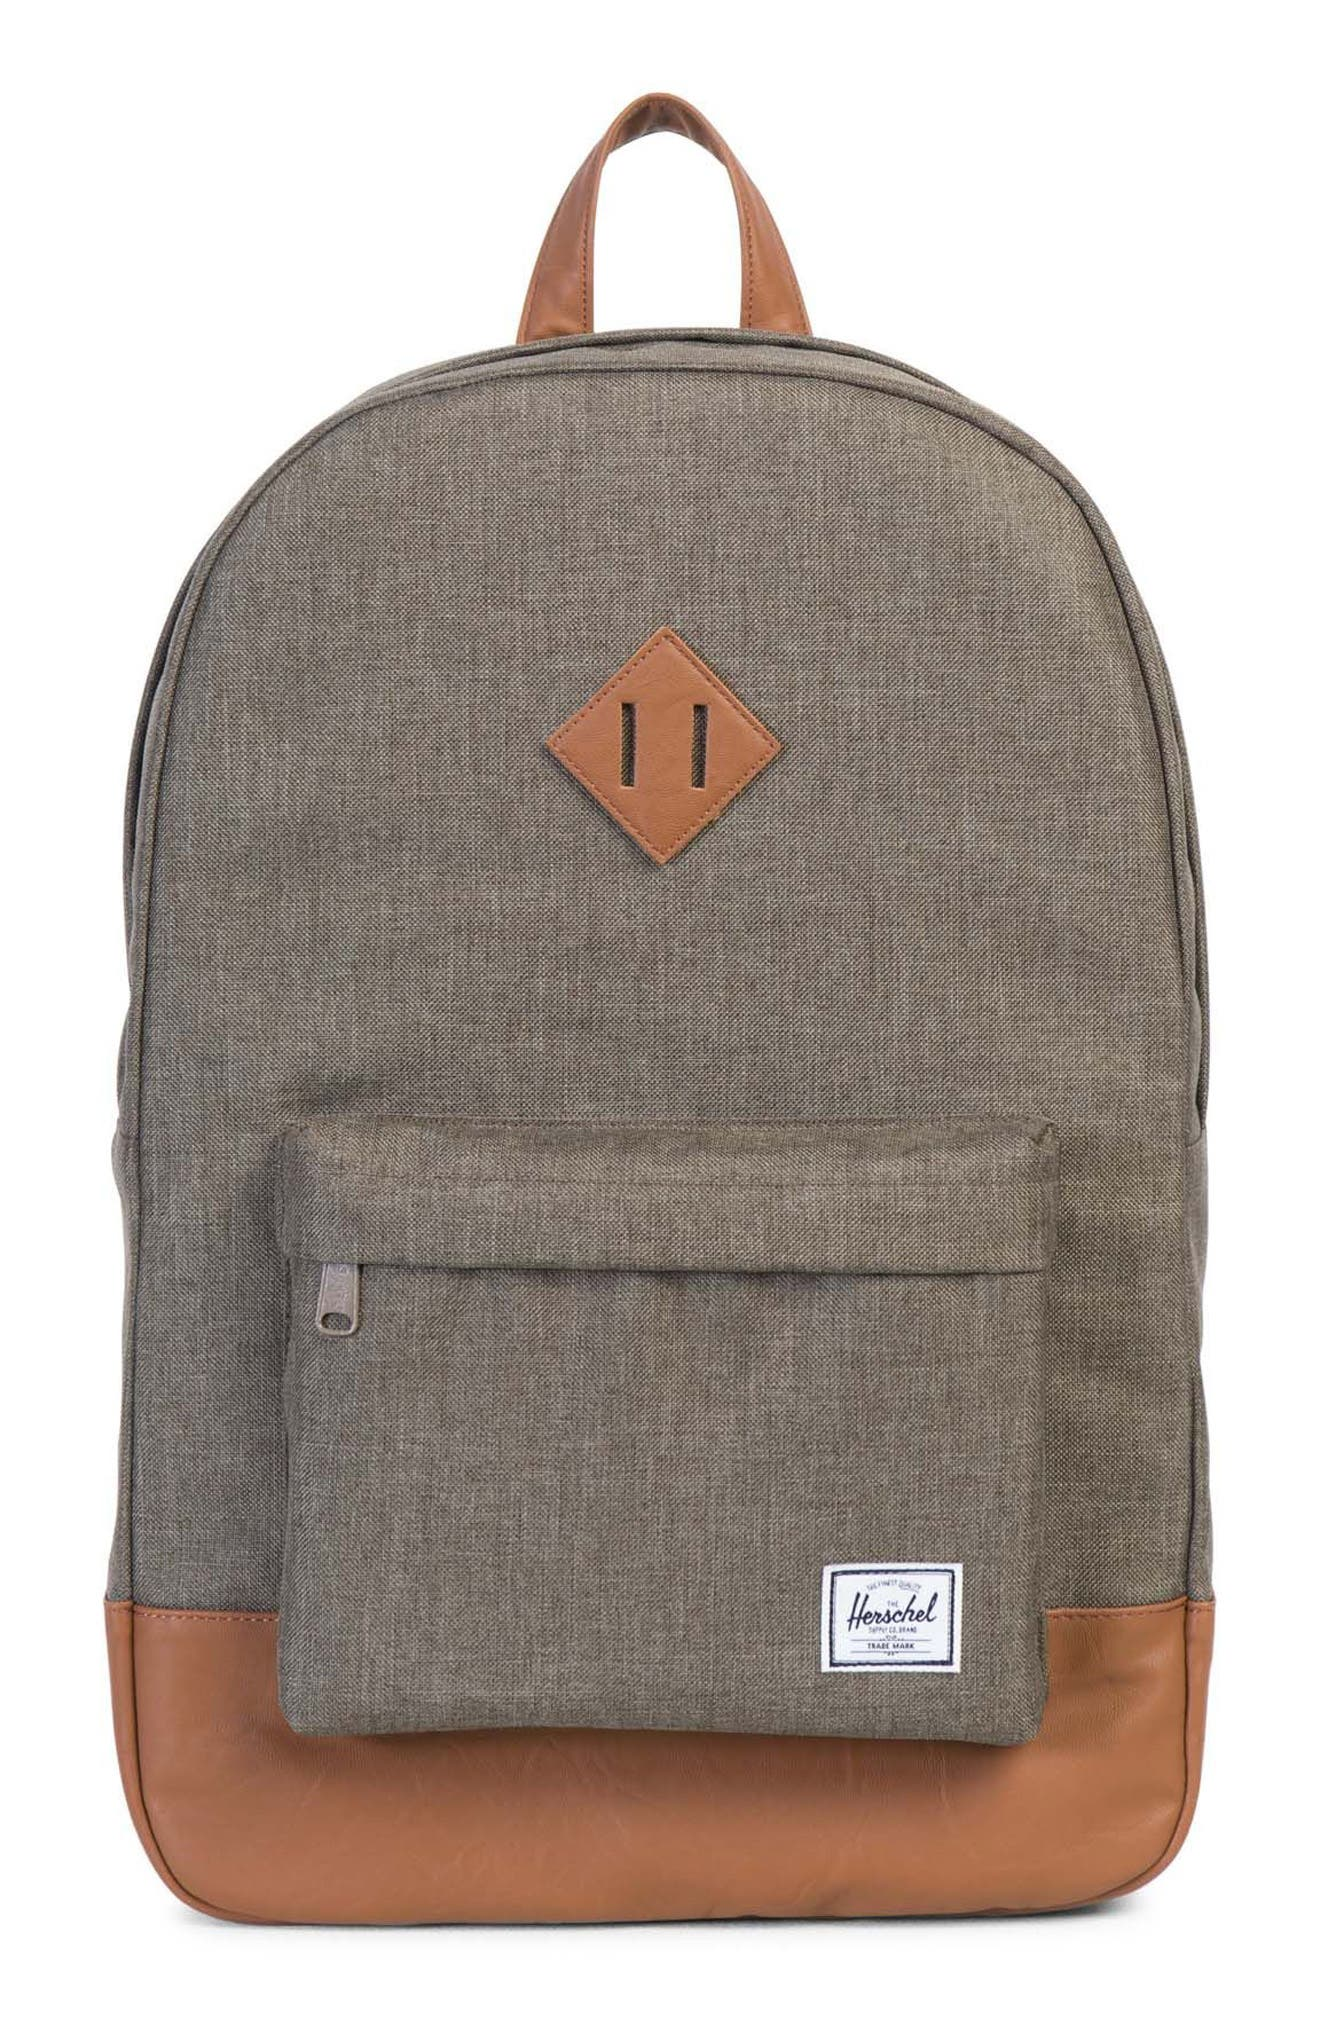 Heritage Backpack,                         Main,                         color, 218